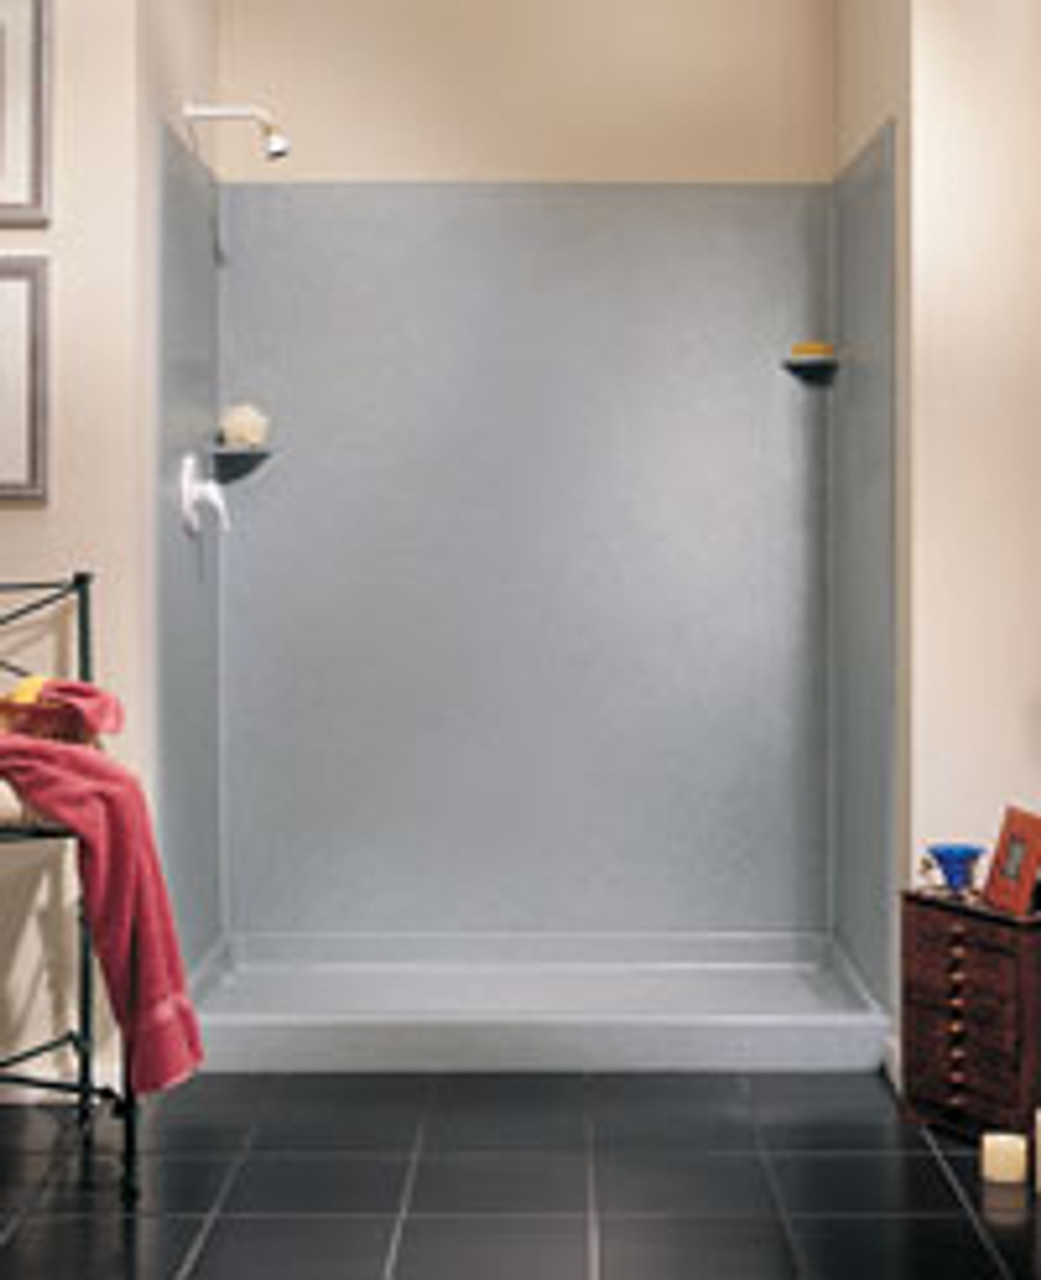 Swanstone Sk 364896 Solid Surface Shower Wall Kit 36 X 48 X 96